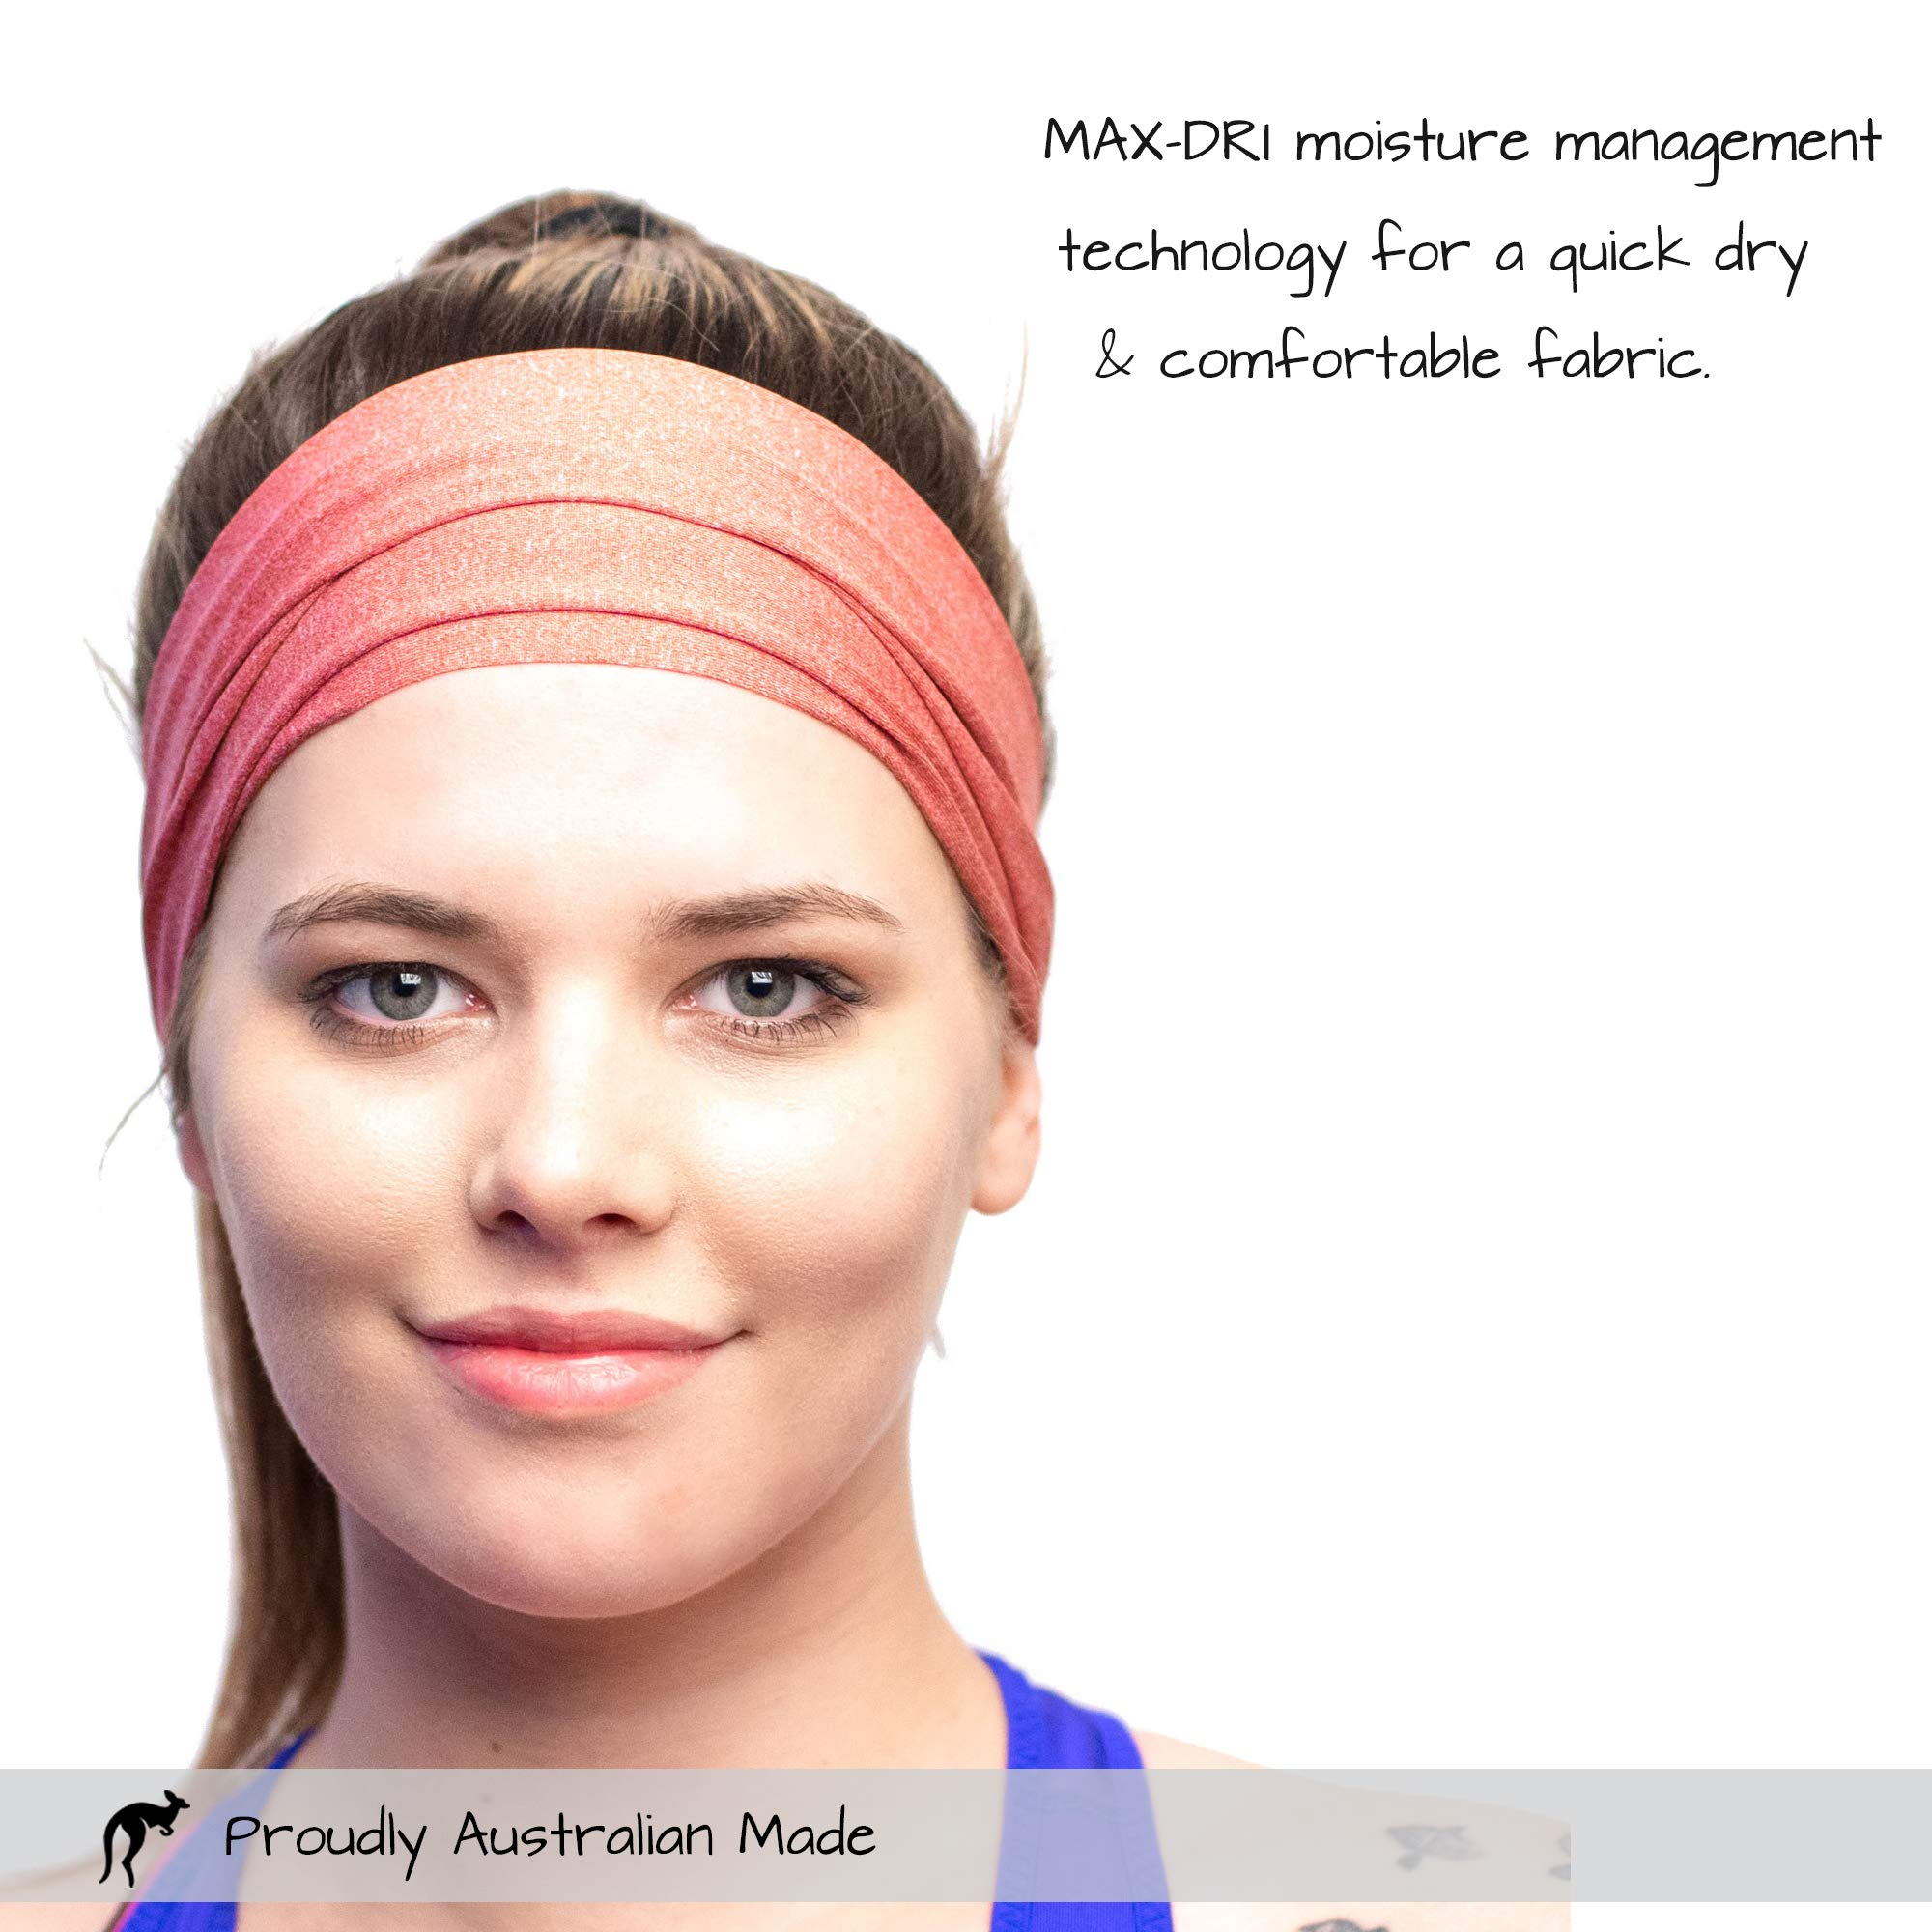 Red Dust Active Sports Headband - Lightweight, Wide & Moisture Wicking - The Ideal Red Running Sweatband - Designed for Women by Red Dust Active (Image #5)